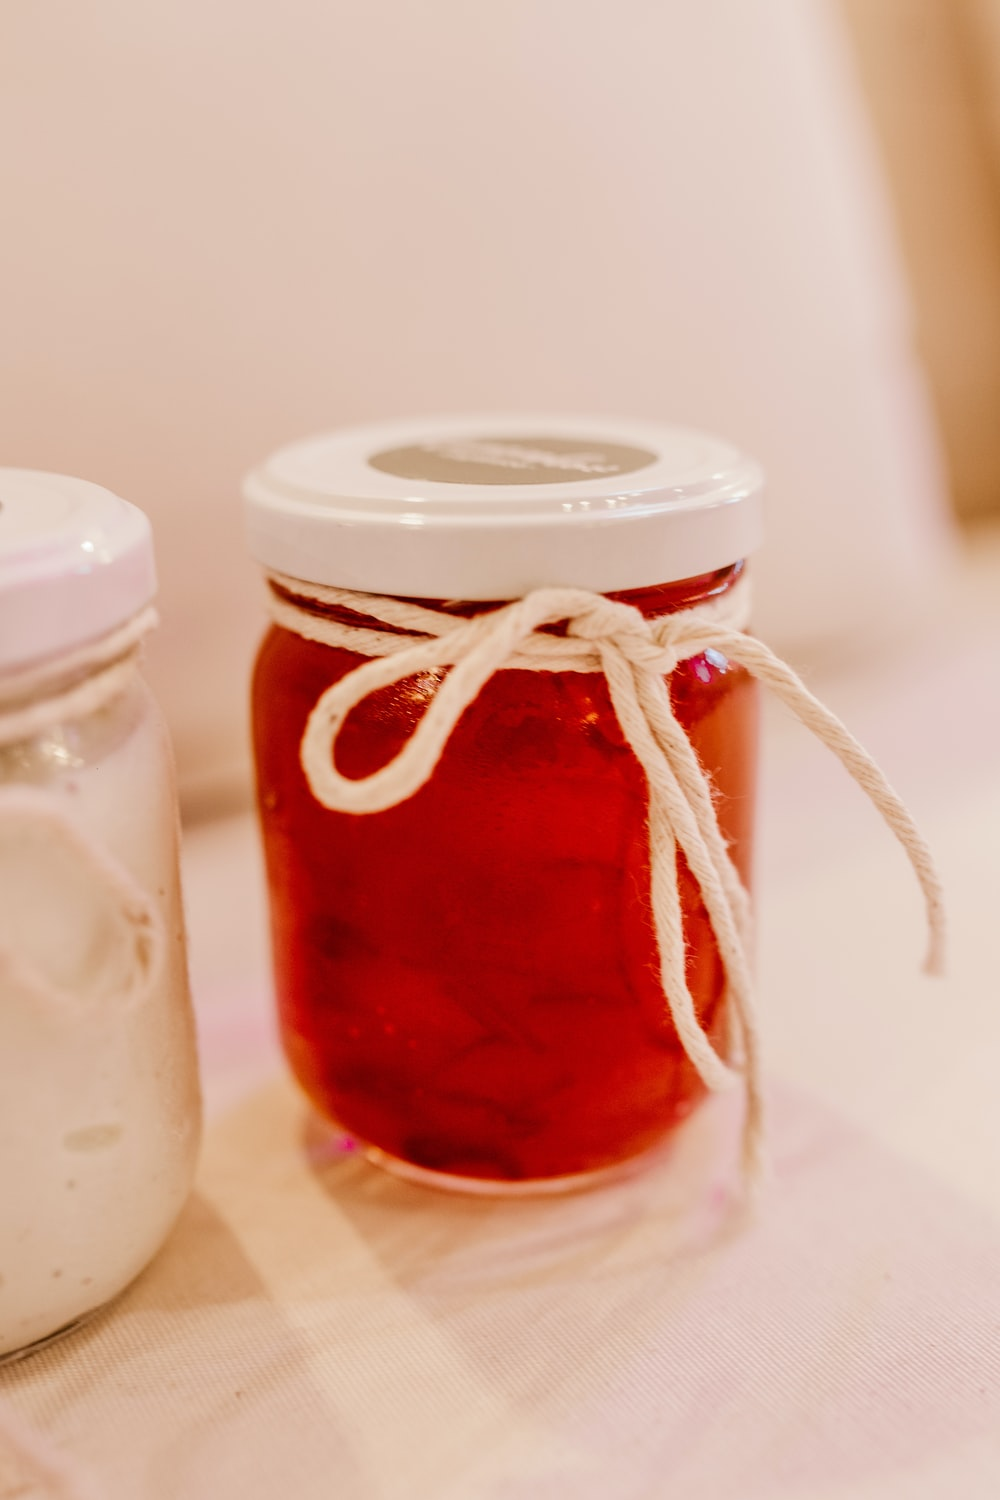 clear glass jar with red liquid